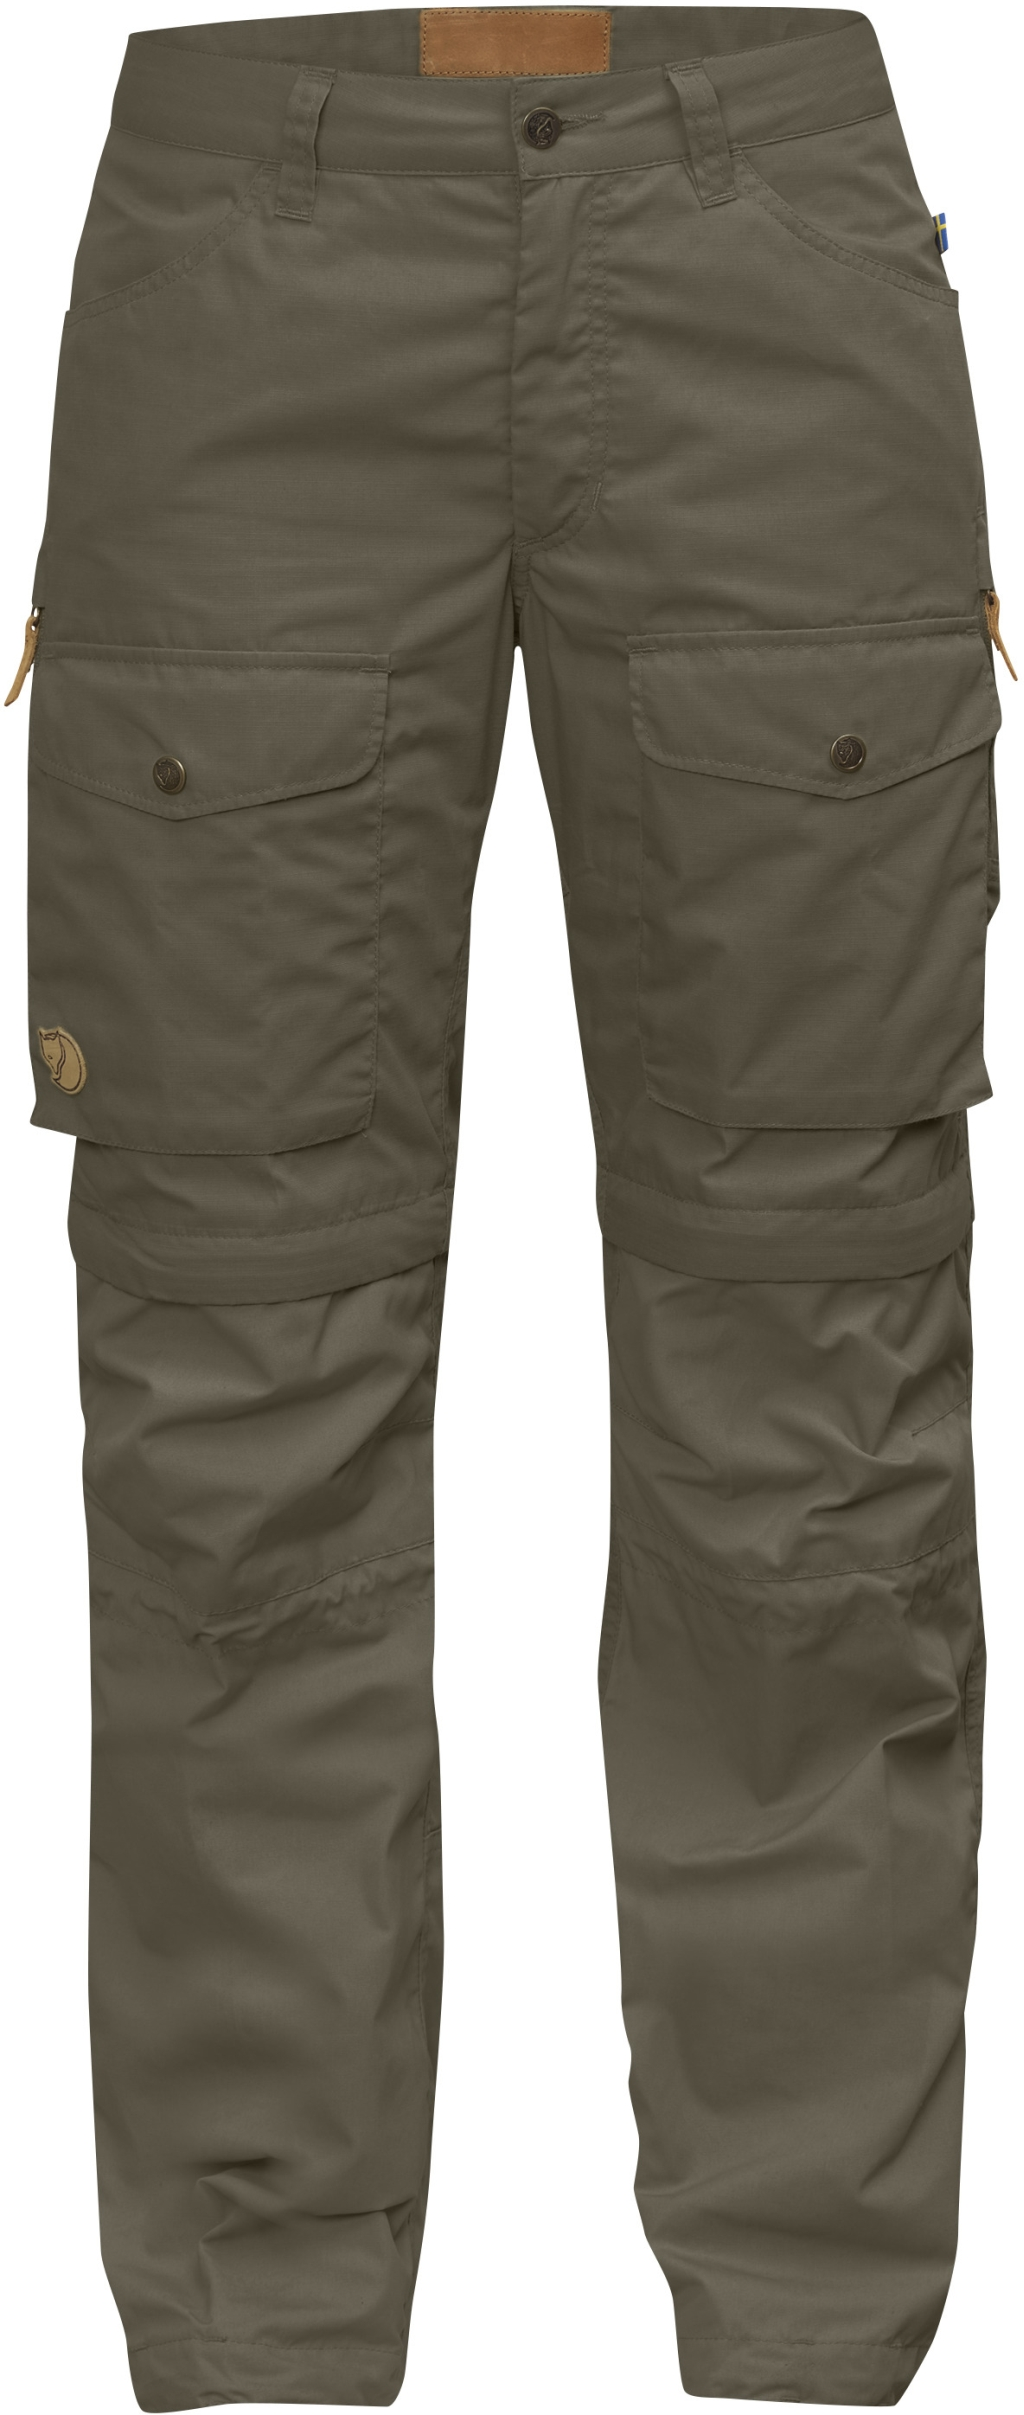 FjallRaven Gaiter Trousers No. 2 W Tarmac-30